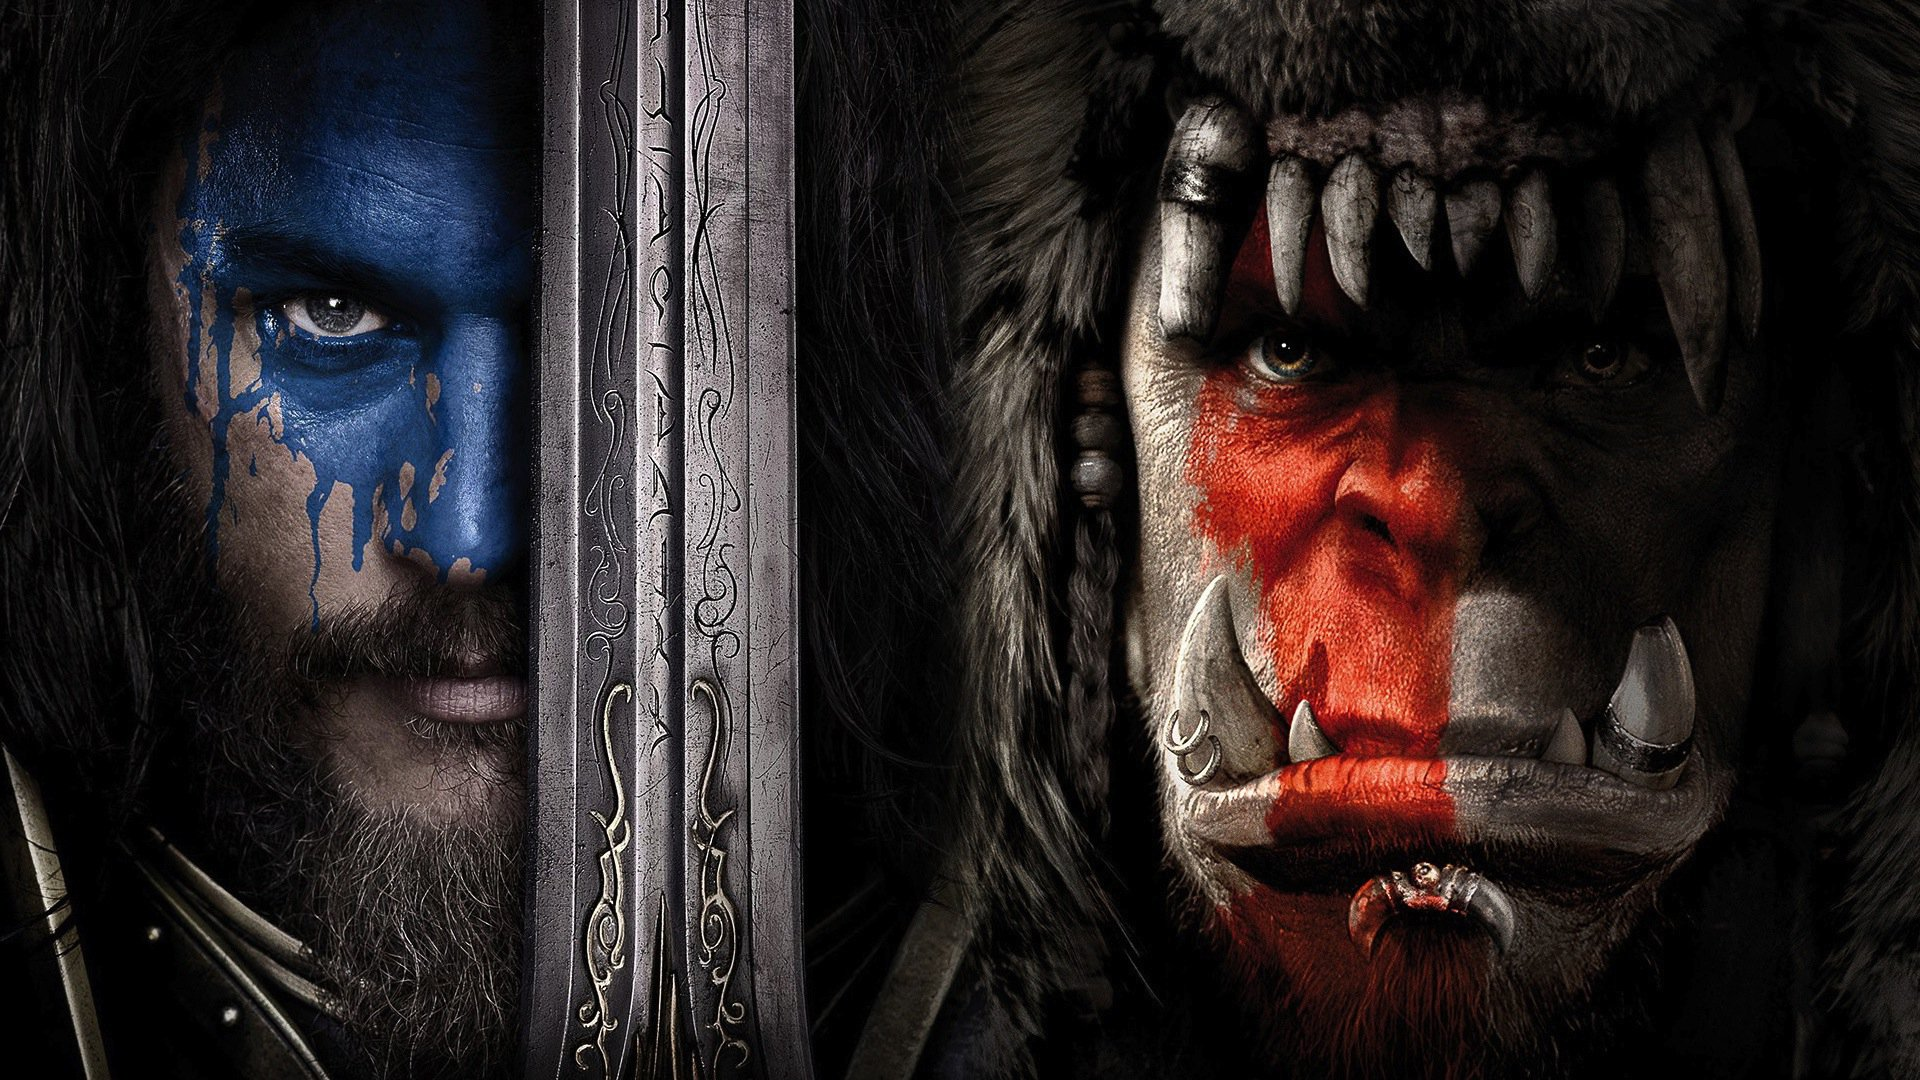 Warcraft (2016) Wallpapers | Best Wallpapers Hd Wallpaper 1920x1080 Of Movies